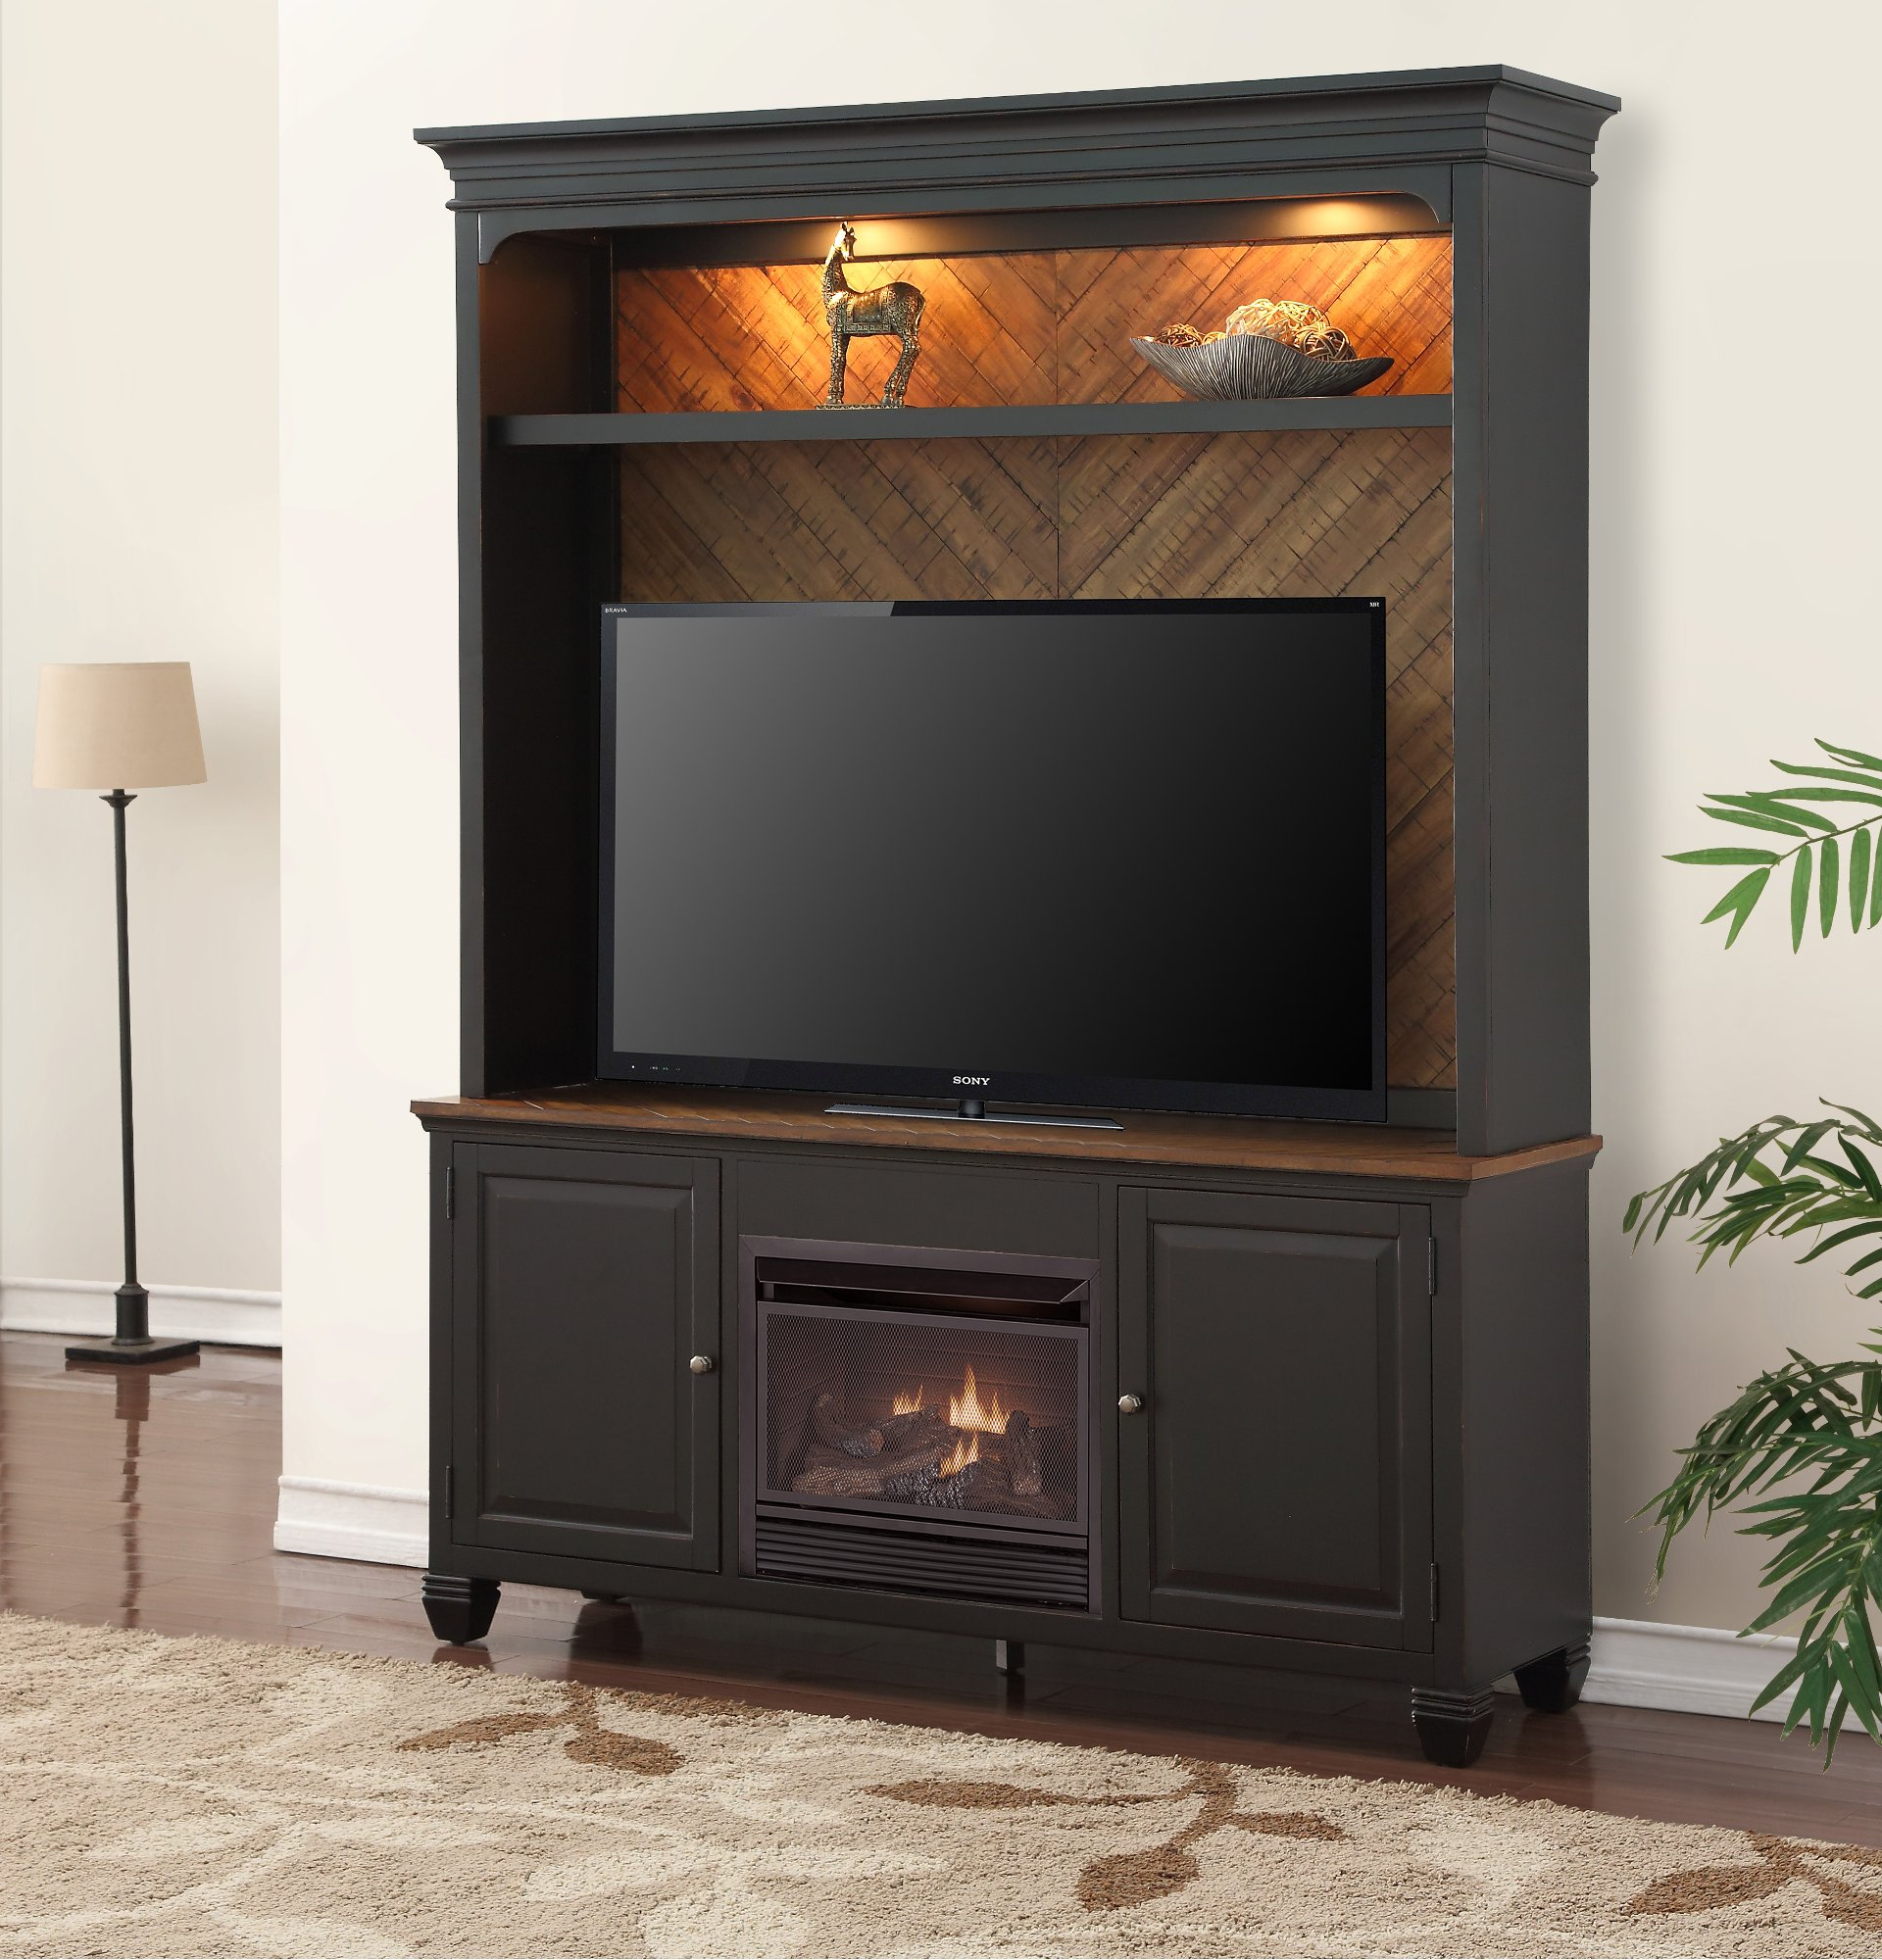 Fireplace Air Conditioner Combo Fireplaces